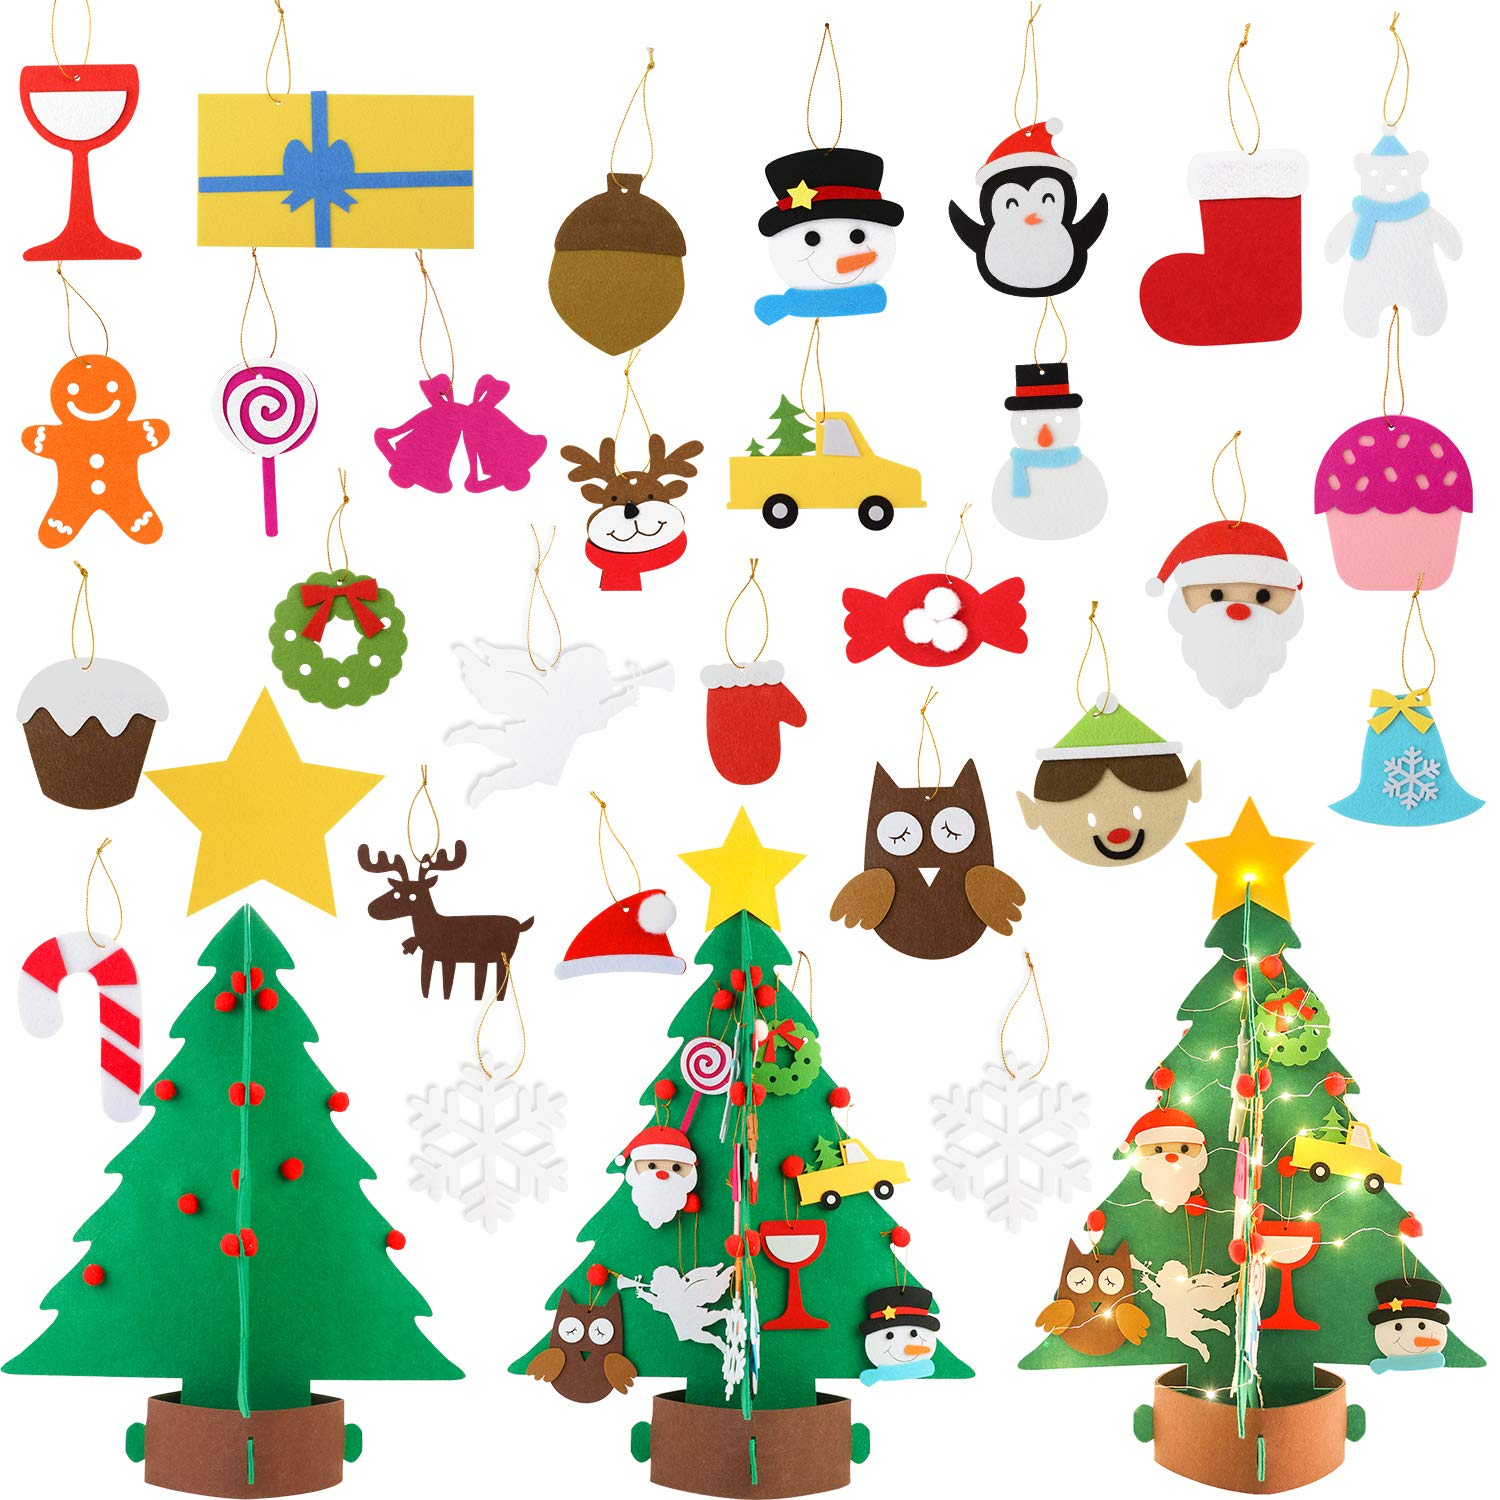 Fansport 3D DIY Felt Christmas Tree Set with 26 Pcs Xmas Ornaments for Christmas Decor, Upgraded DIY Christmas Tree for Christmas Tree for Kids Xmas Decoration